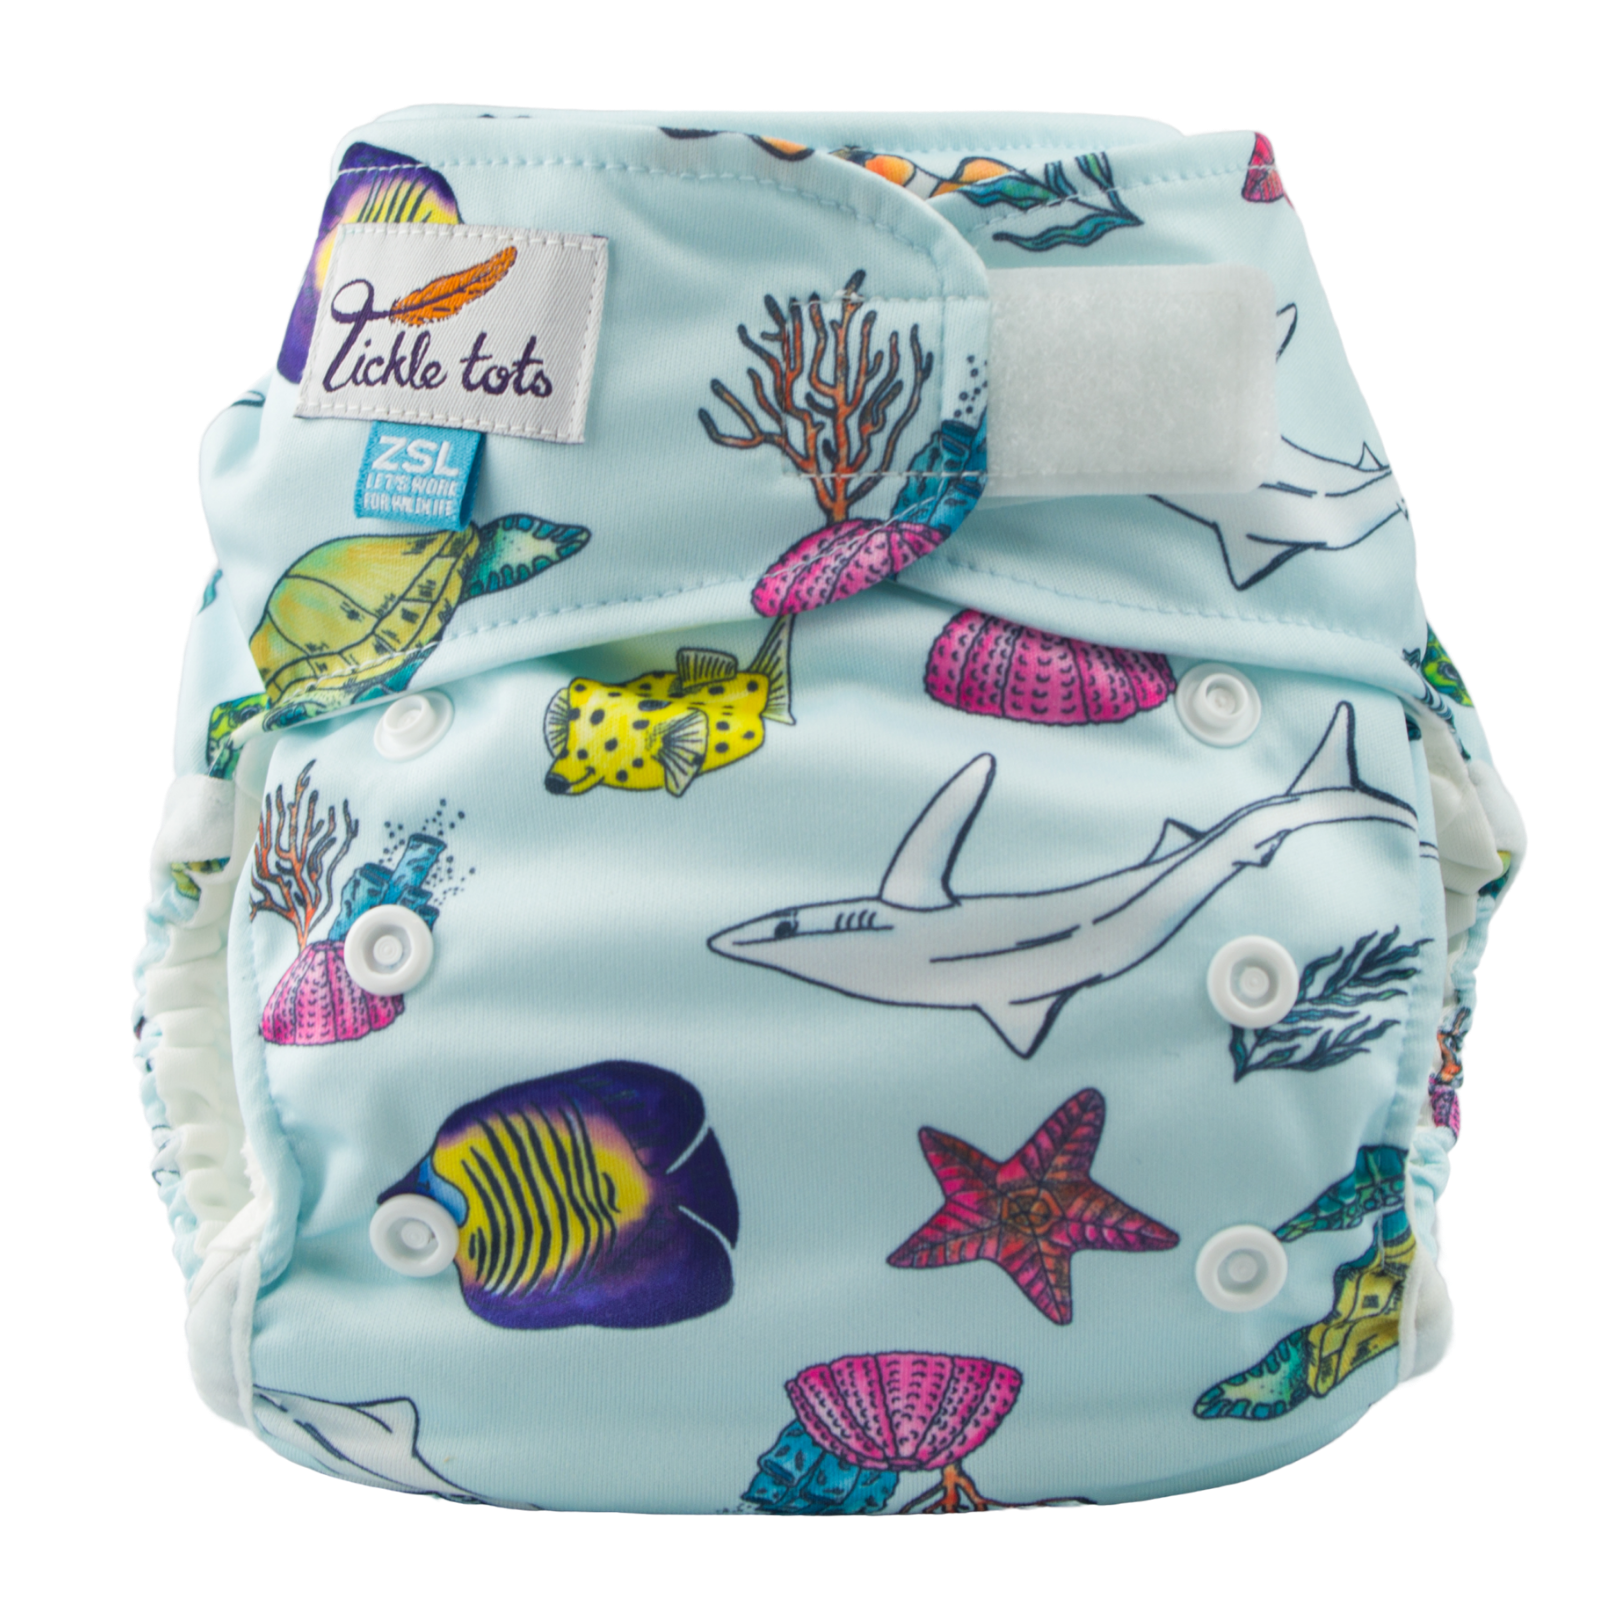 Tickle Tots 2 Ocean Reusable Nappy